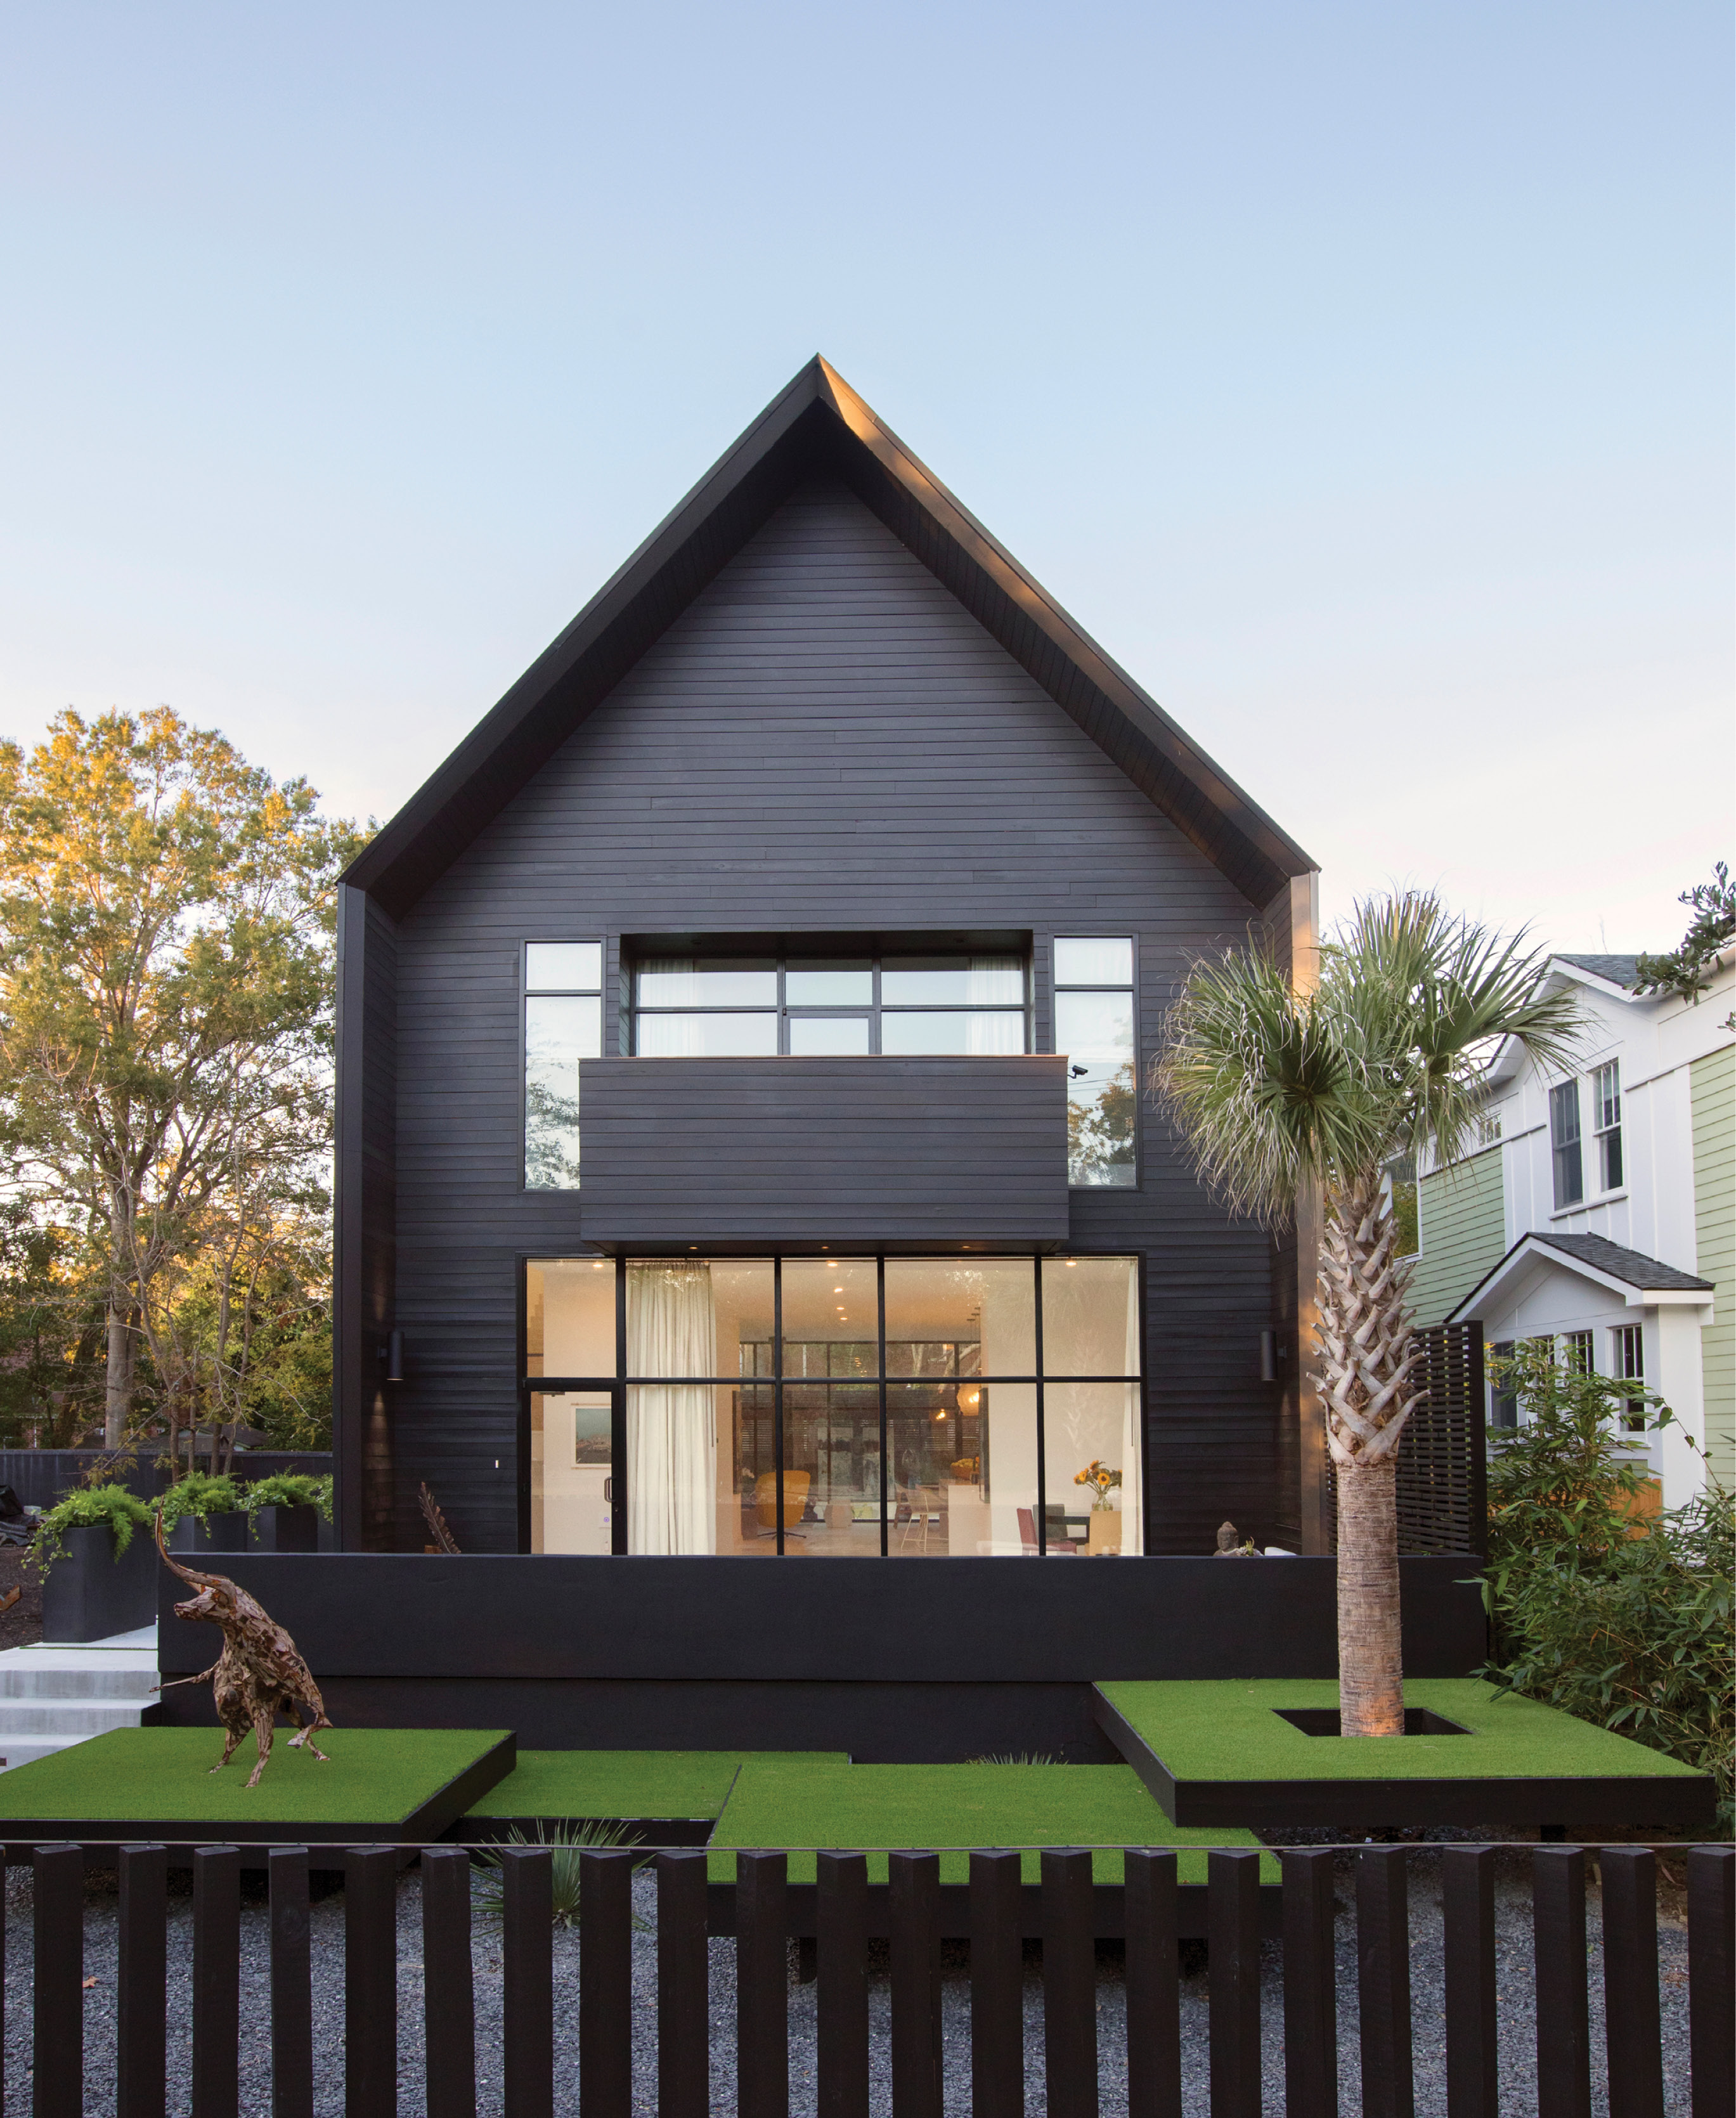 The Black House cuts a striking silhouette near Hampton Park.